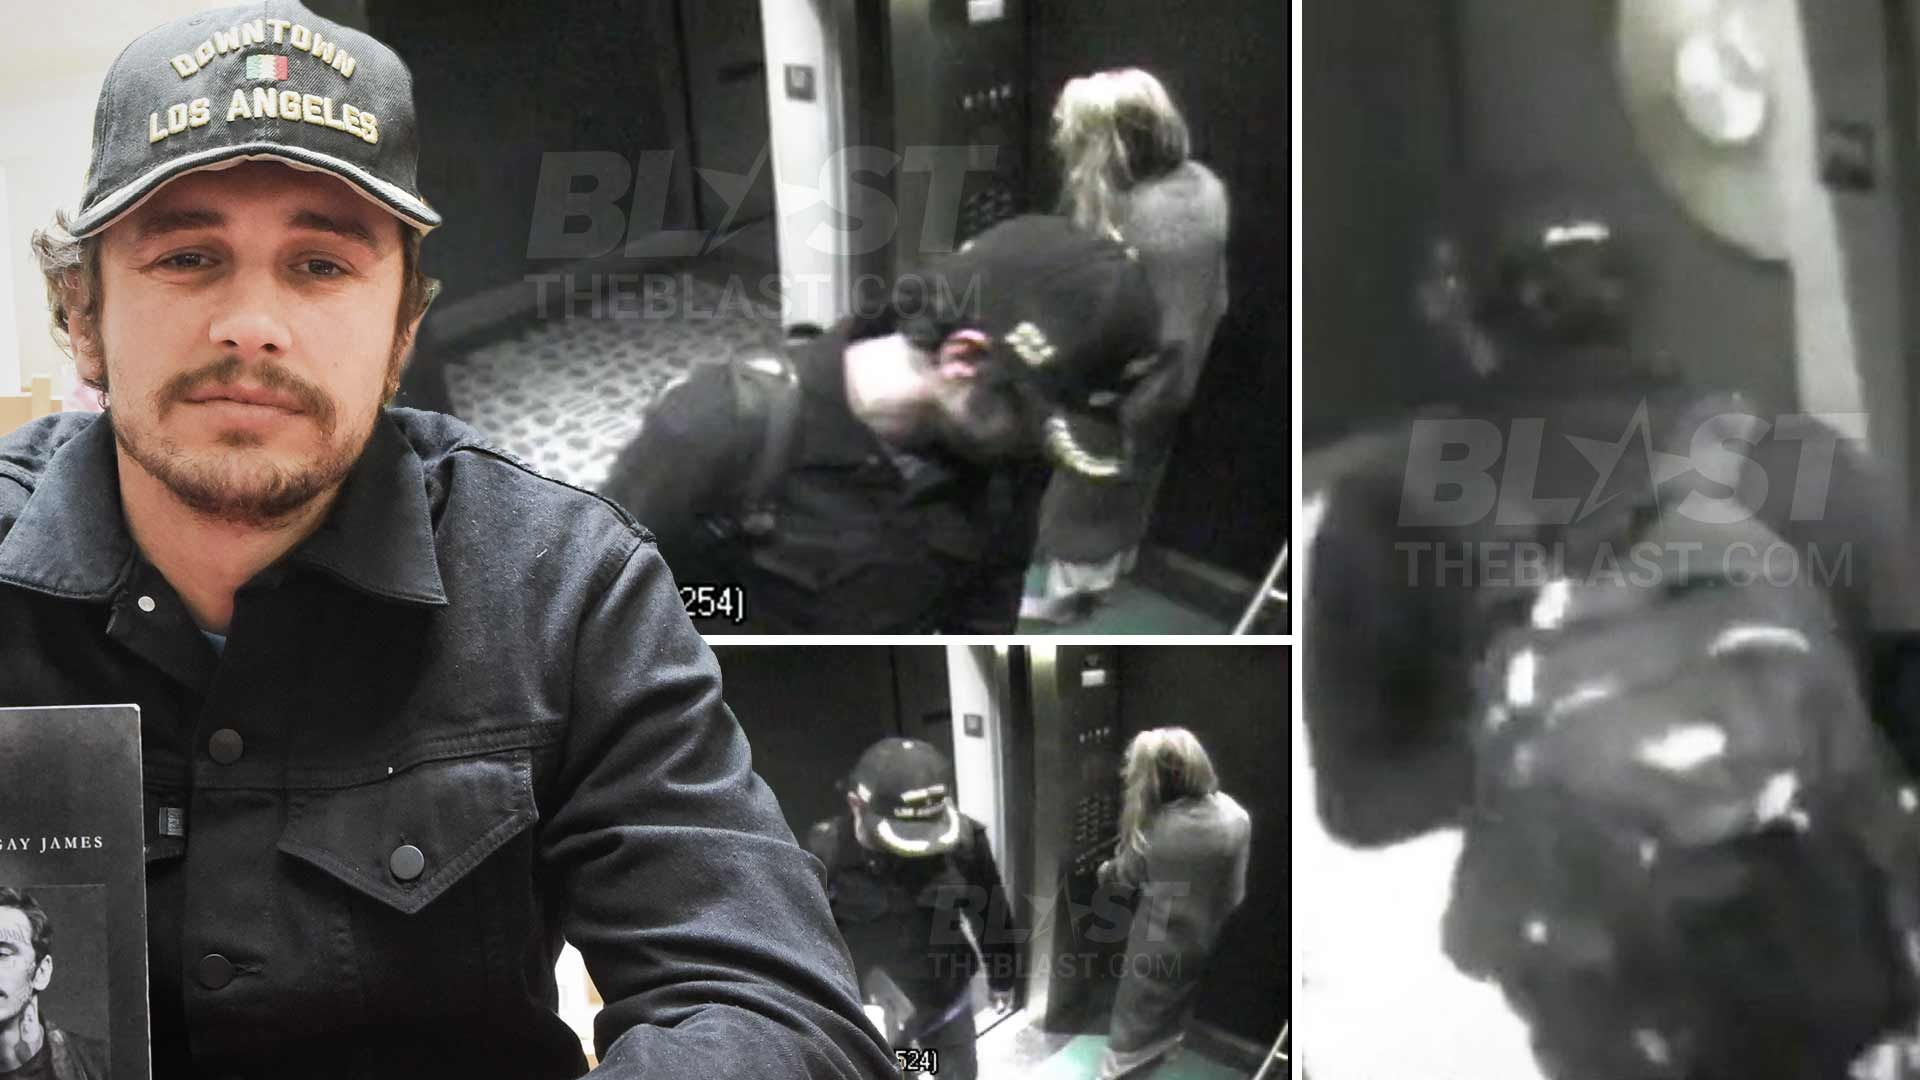 Amber Heard Naked Video surveillance video shows james franco with amber heard one